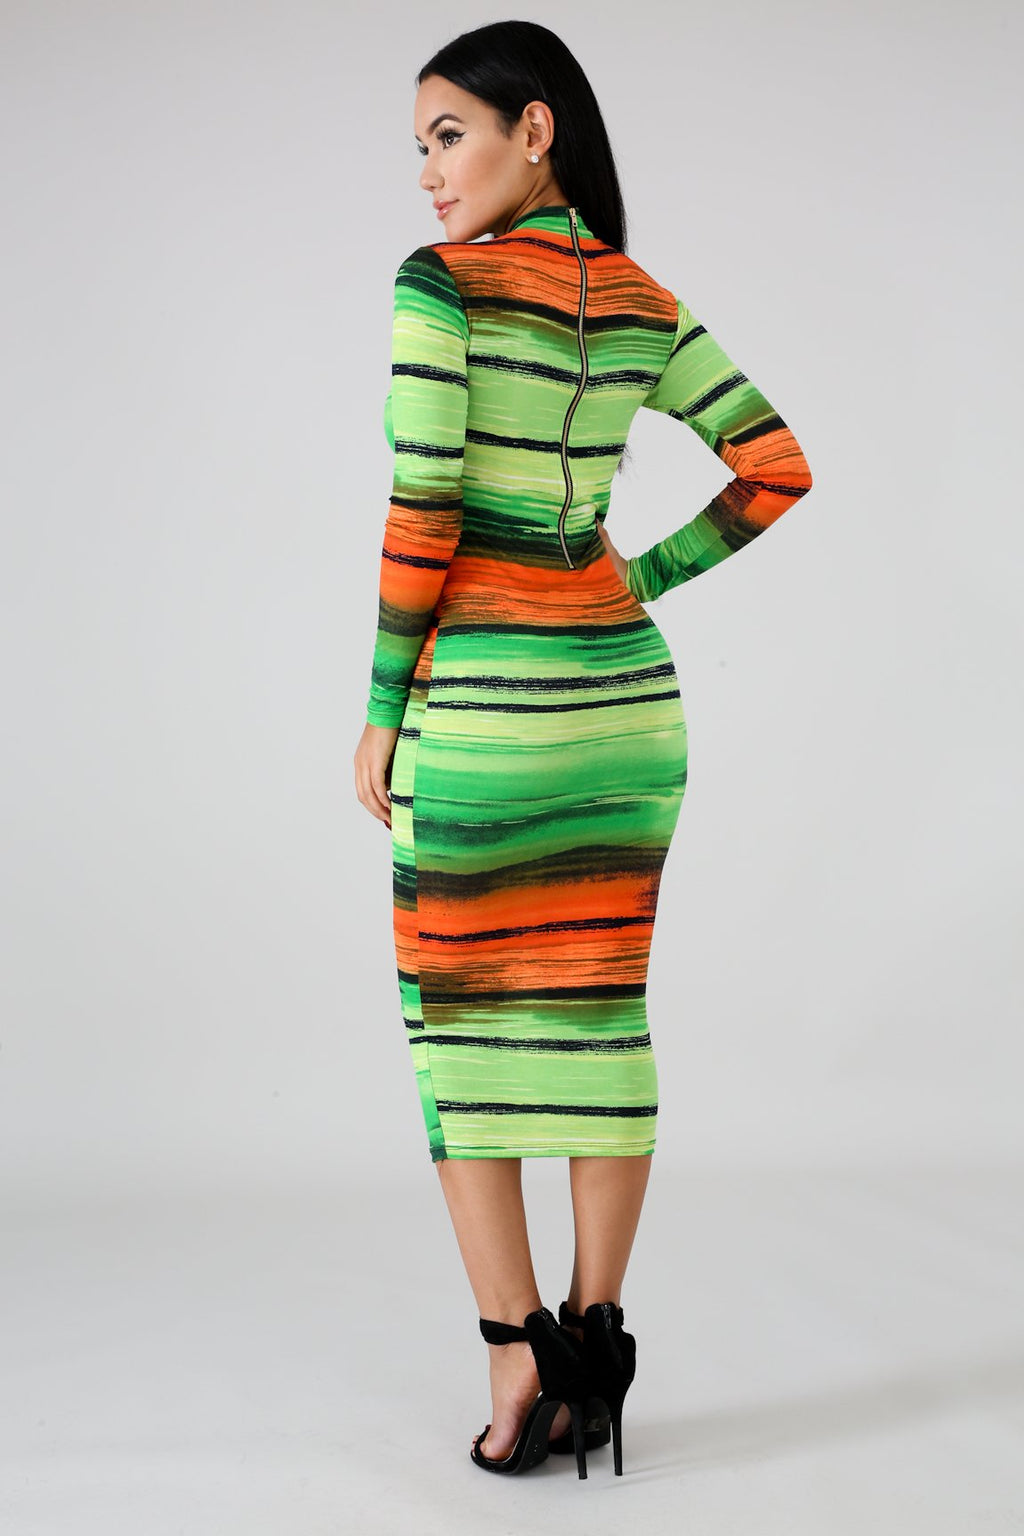 'Mesmerized' Midi Dress